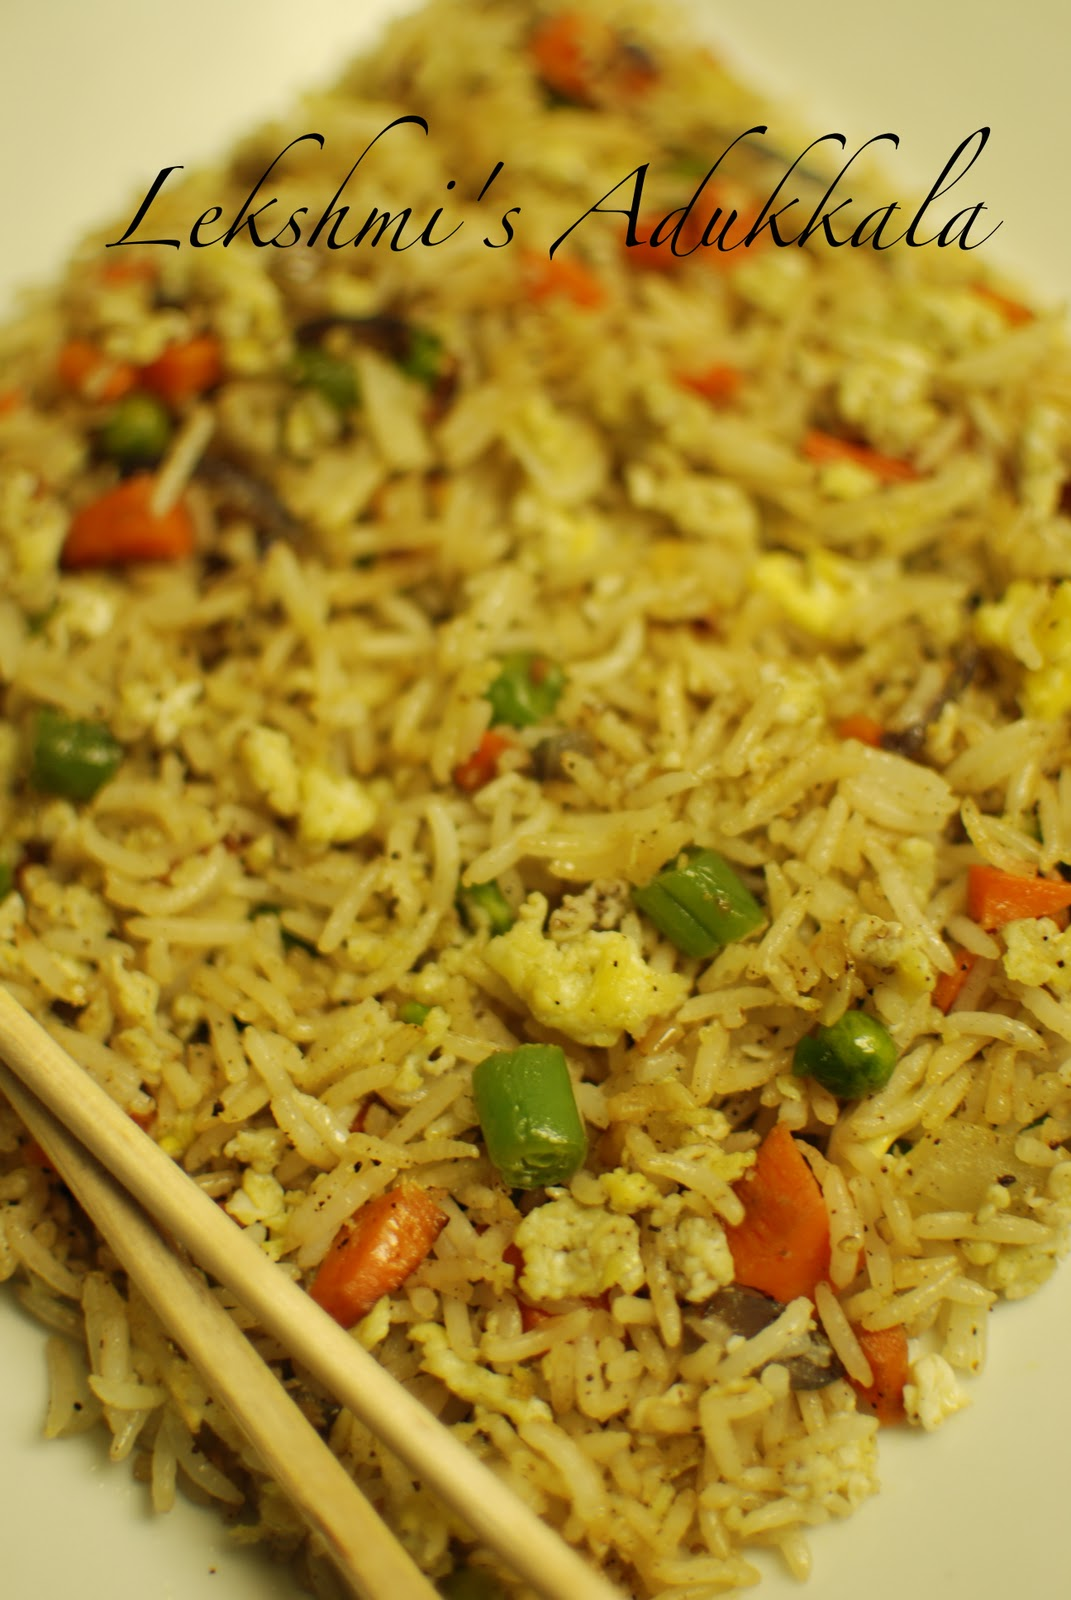 Lekshmi's Adukkala: Egg Fried Rice